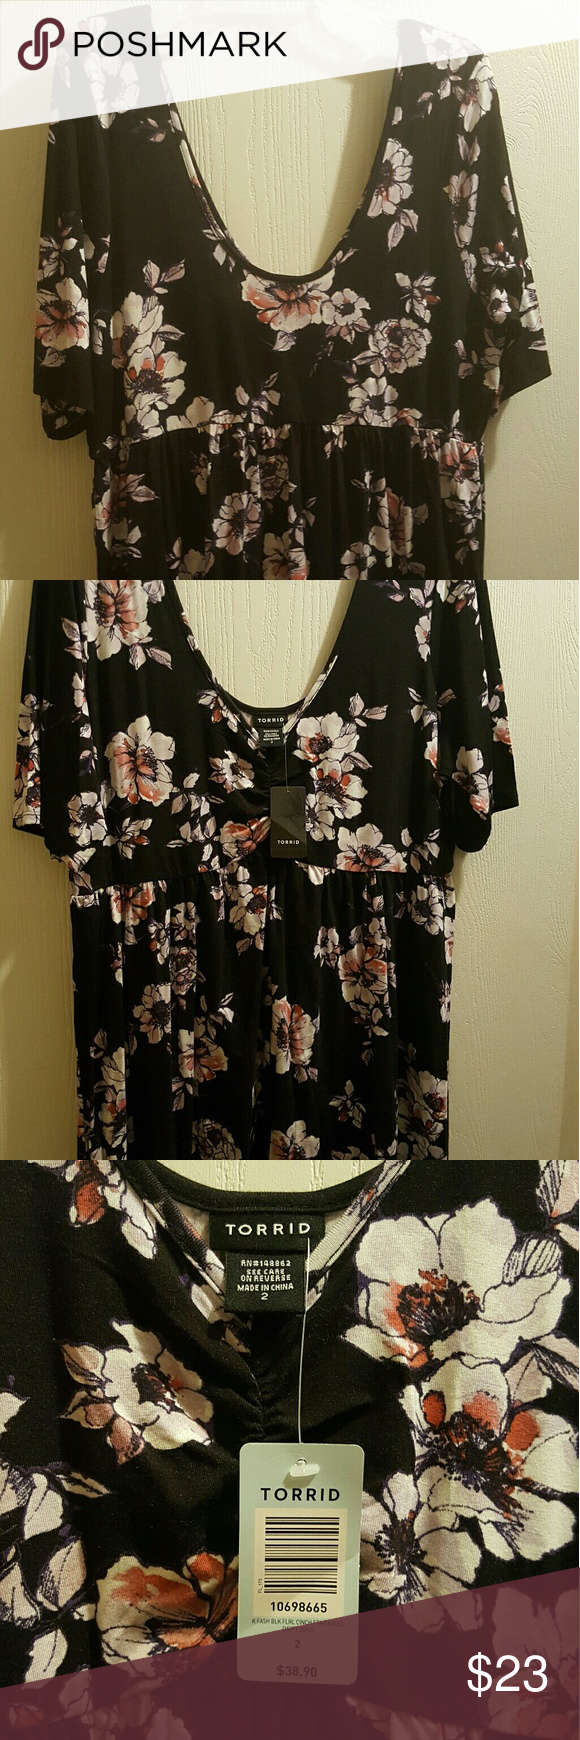 Baby doll top Black with white, pink and purple flowers torrid Tops